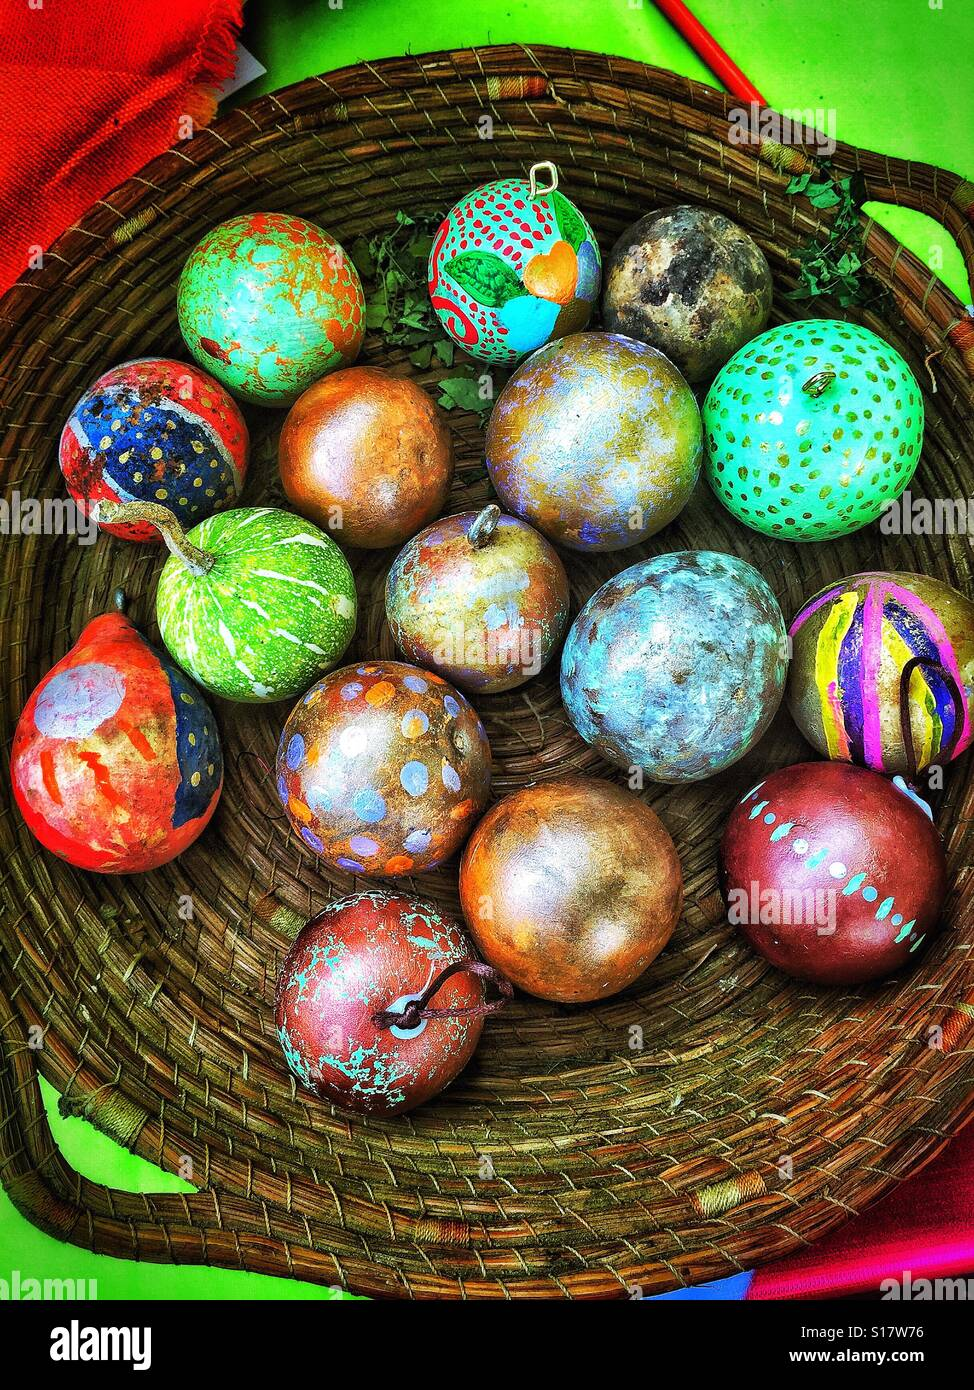 A natural material bowl is filled with painted gourds for unique one of a kind decorations. - Stock Image